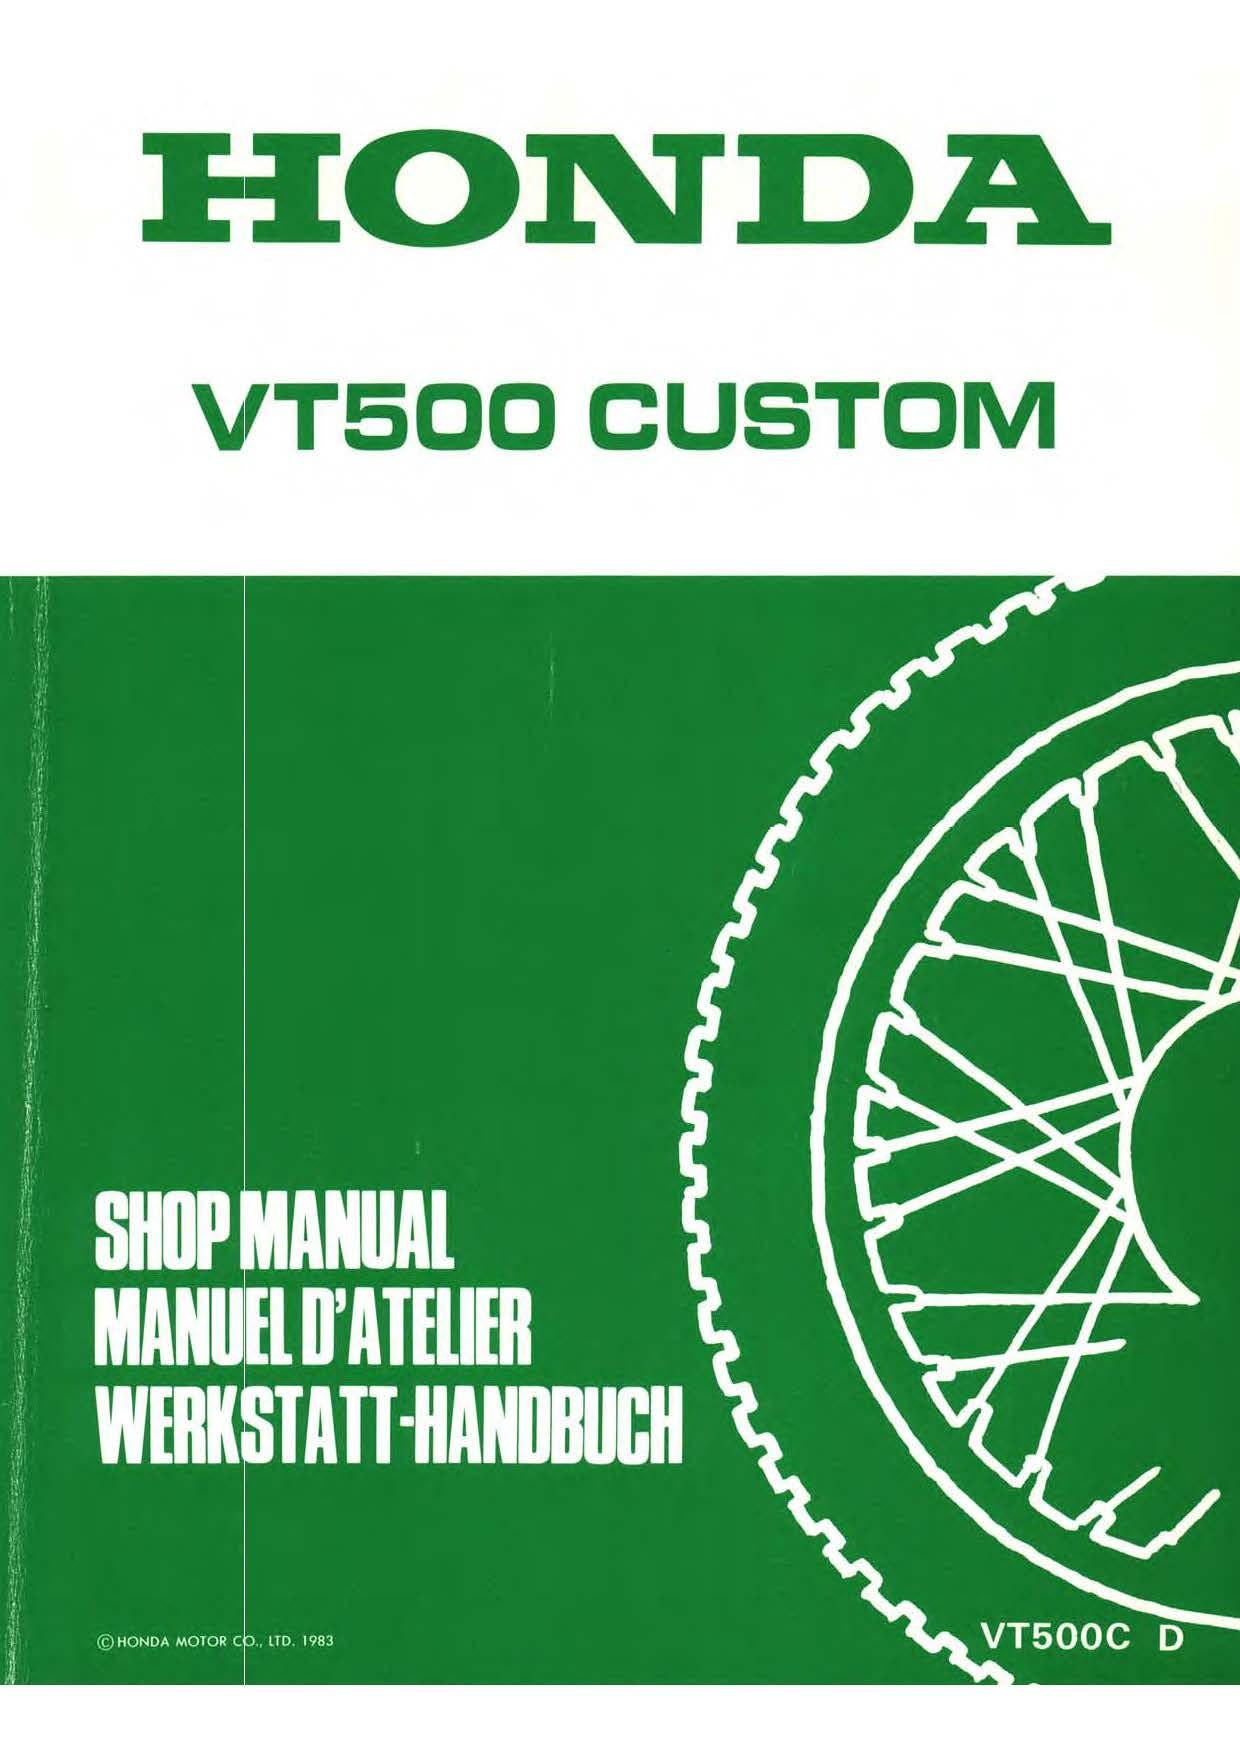 Workshop Manual for Honda VT500C (1983) (Multi-language)